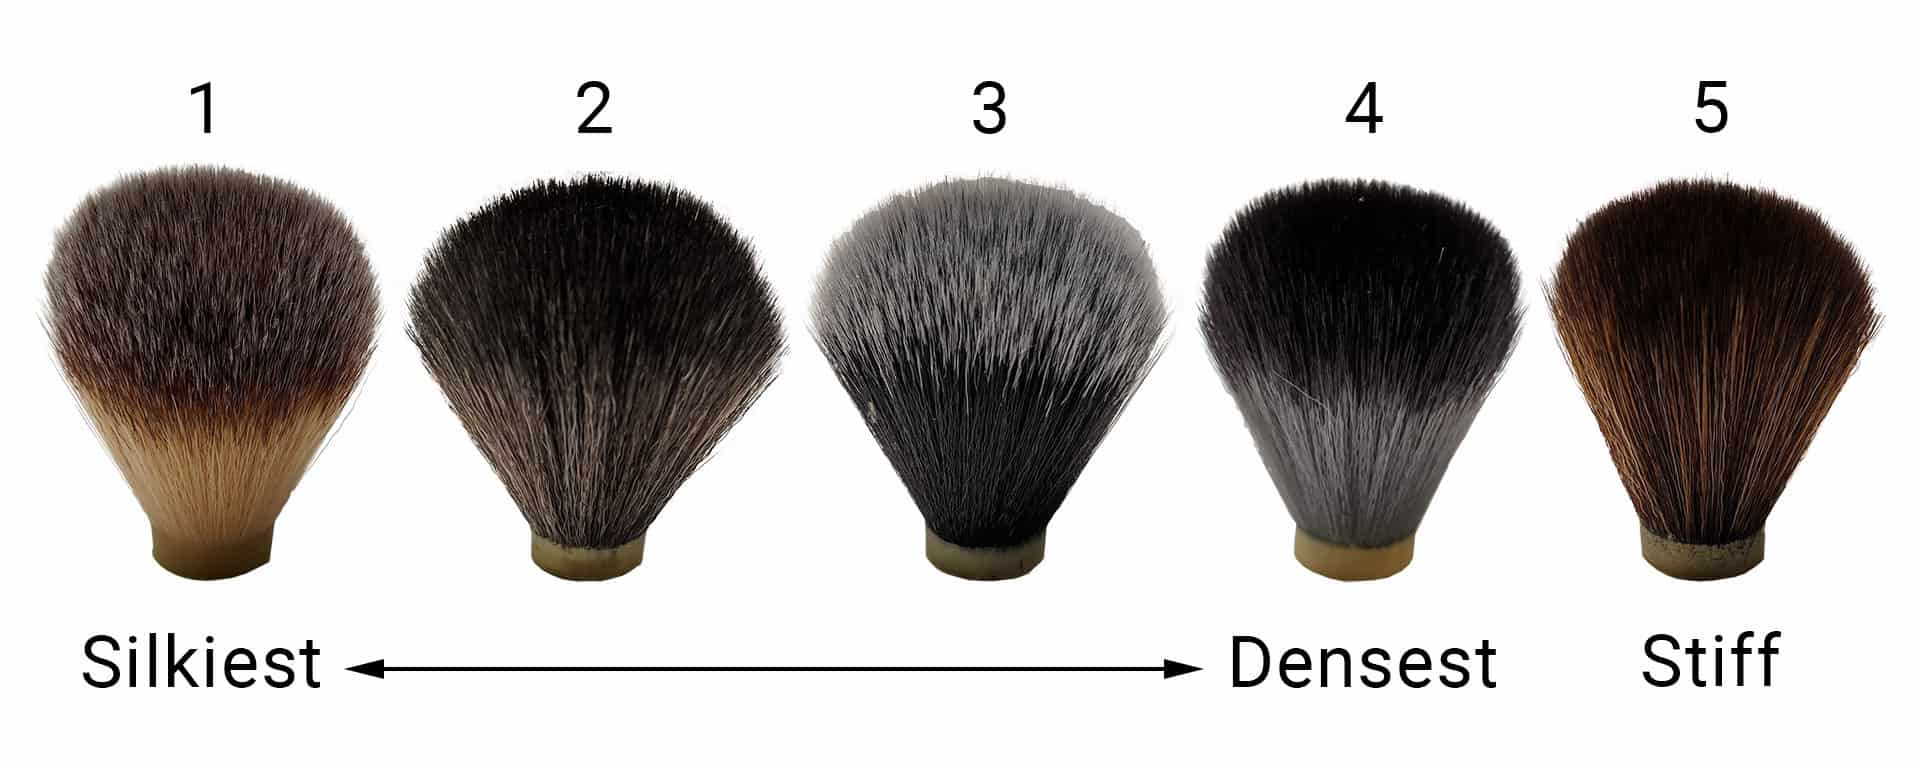 Available Brush knots from silkiest to densest and stiff. Numbered 1 to 5.